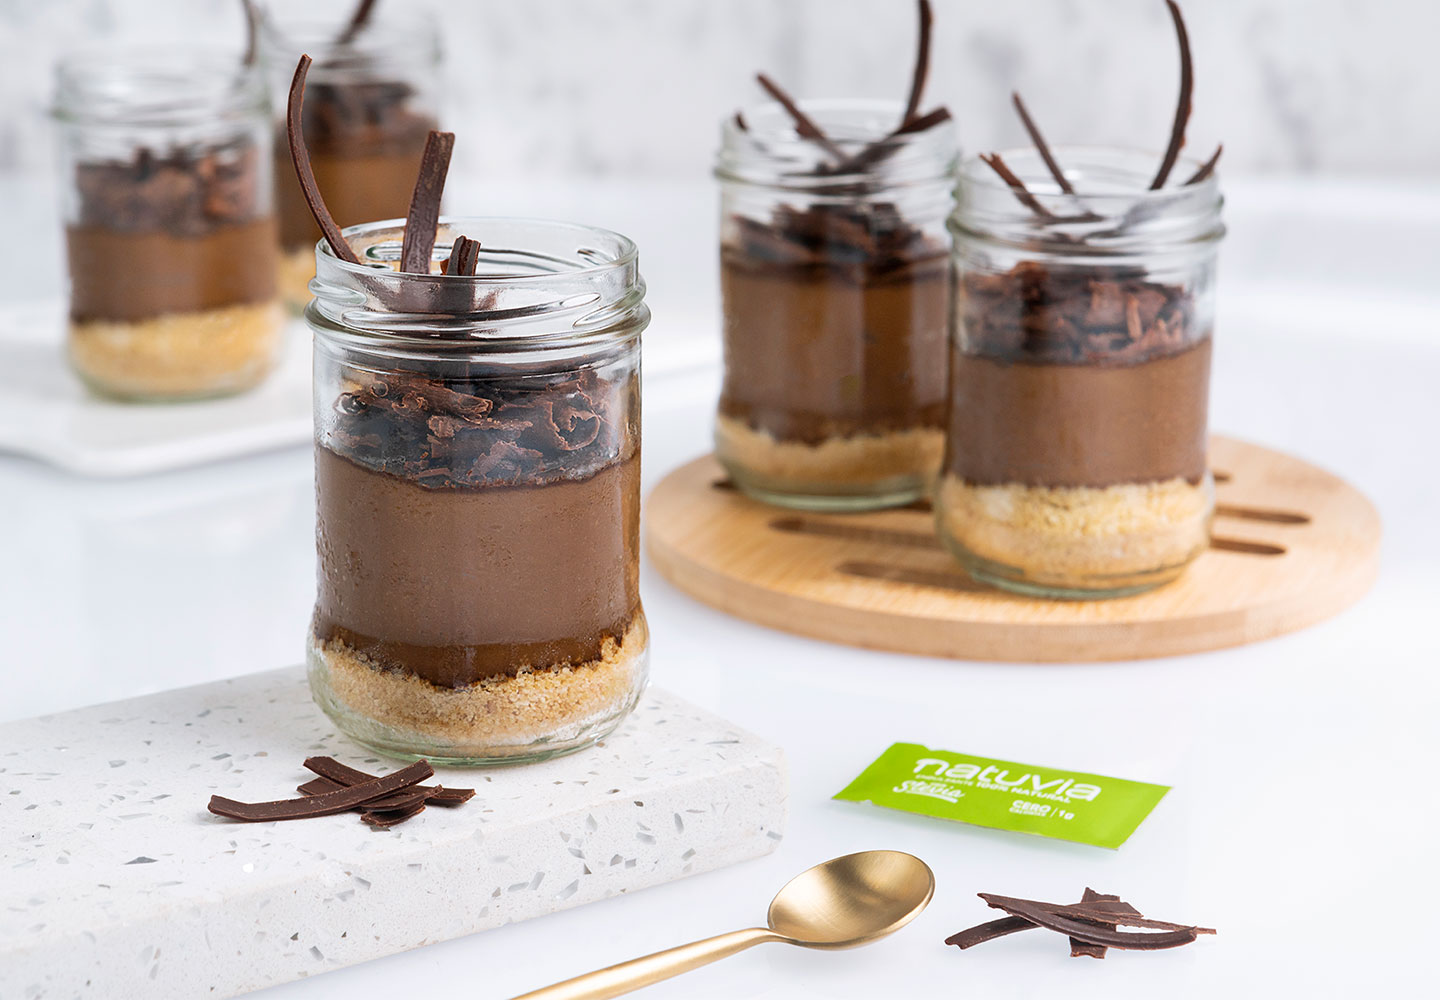 Mousse de aguacate y chocolate negro